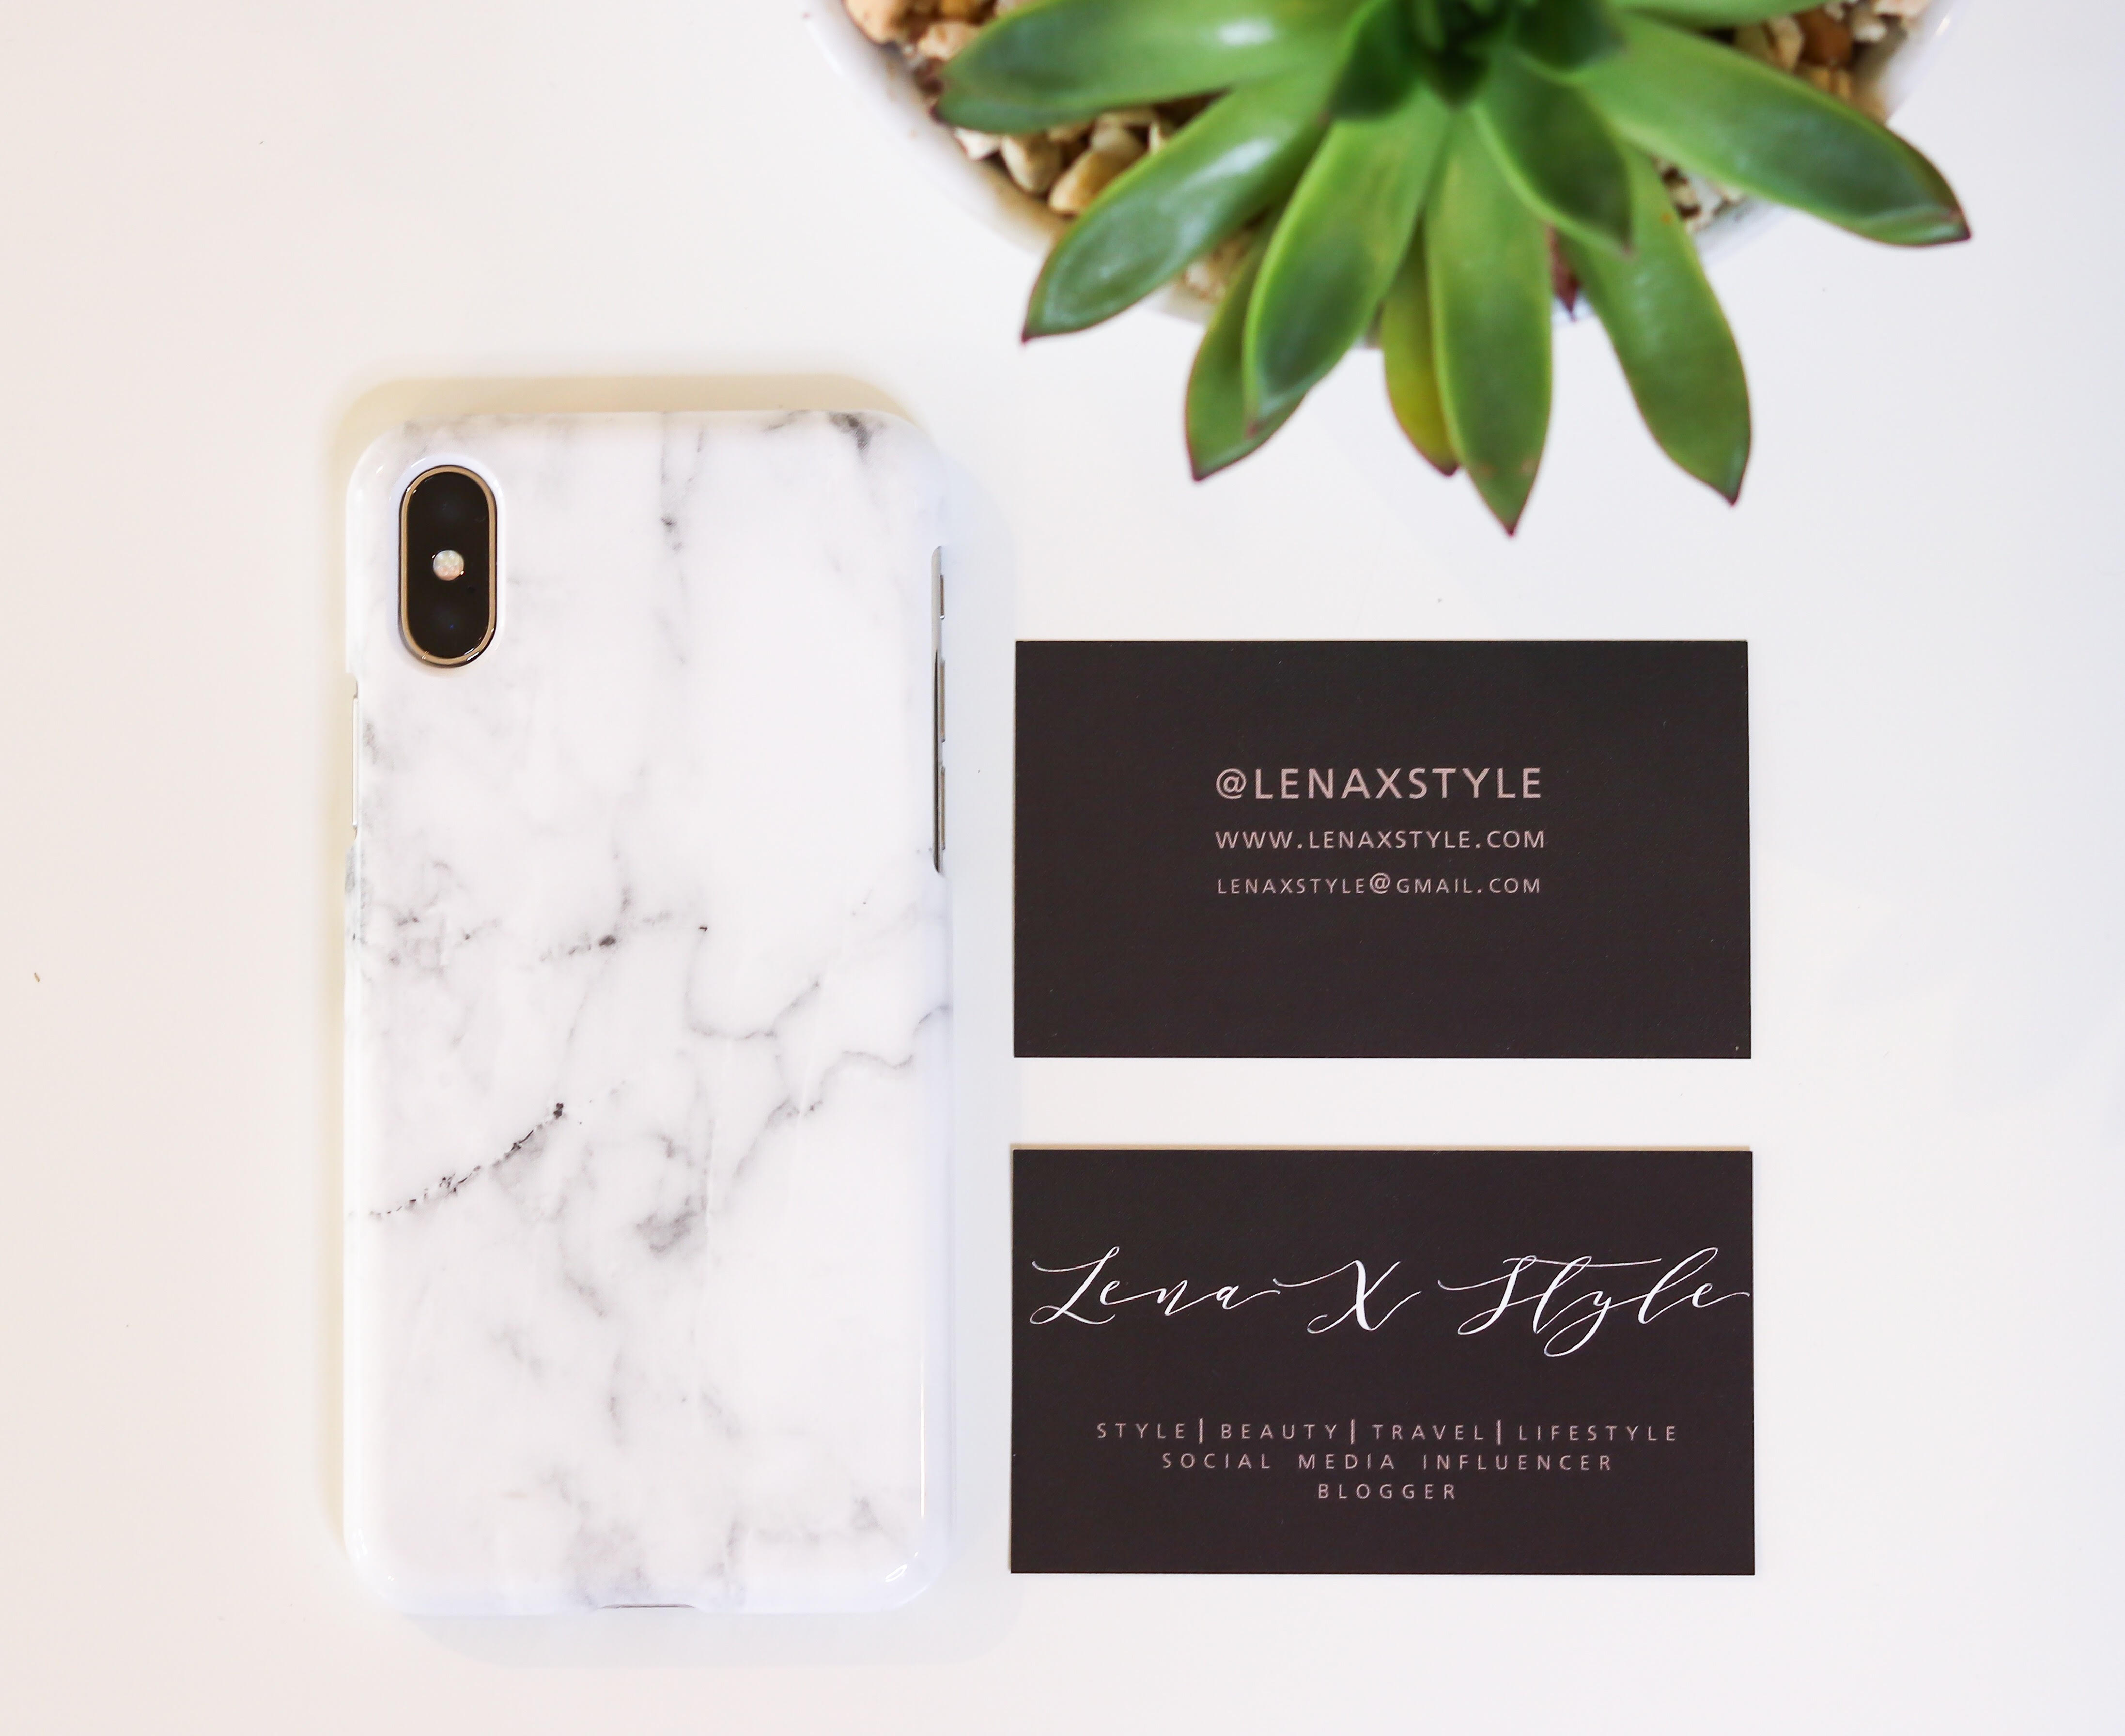 Blogger business cards basic invite review l e n a x s t y l e full time blogger and social media influencer most of the business exchanges are accomplished online and through e mails media kitrate cards are also colourmoves